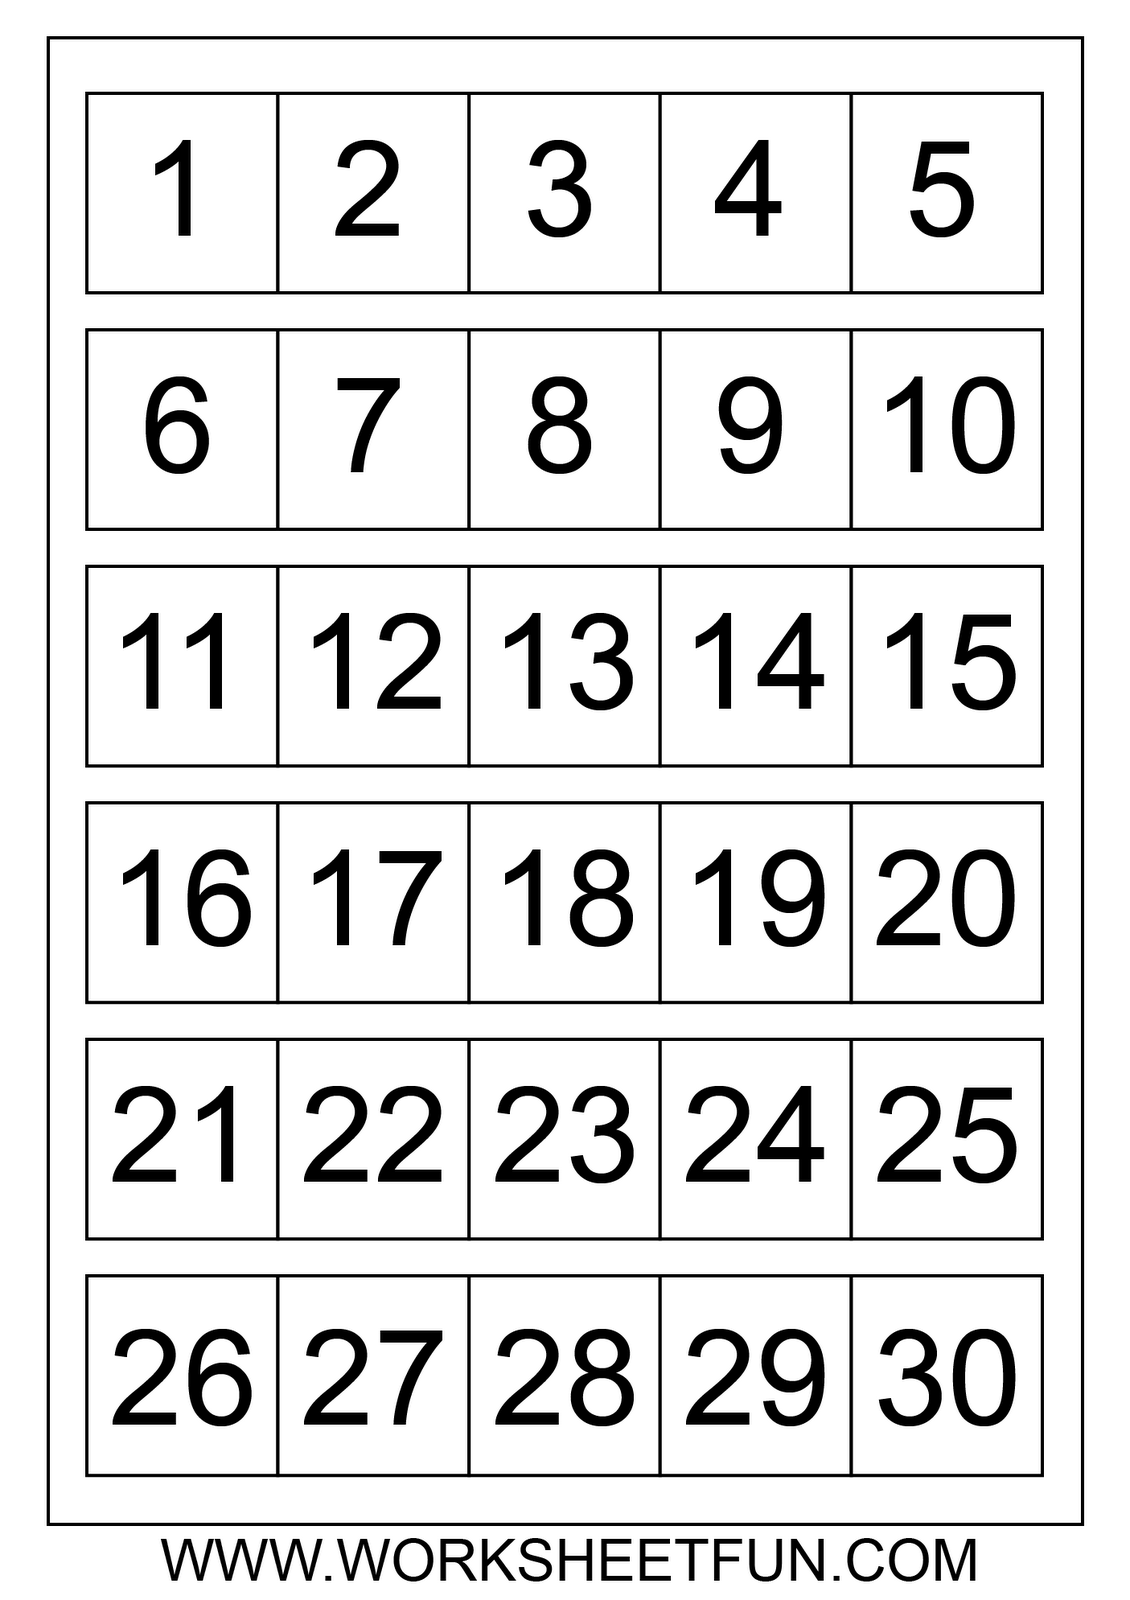 photo about Free Large Printable Numbers 1 100 called Significant Printable Quantities 1 100 Toward Dot With Figures